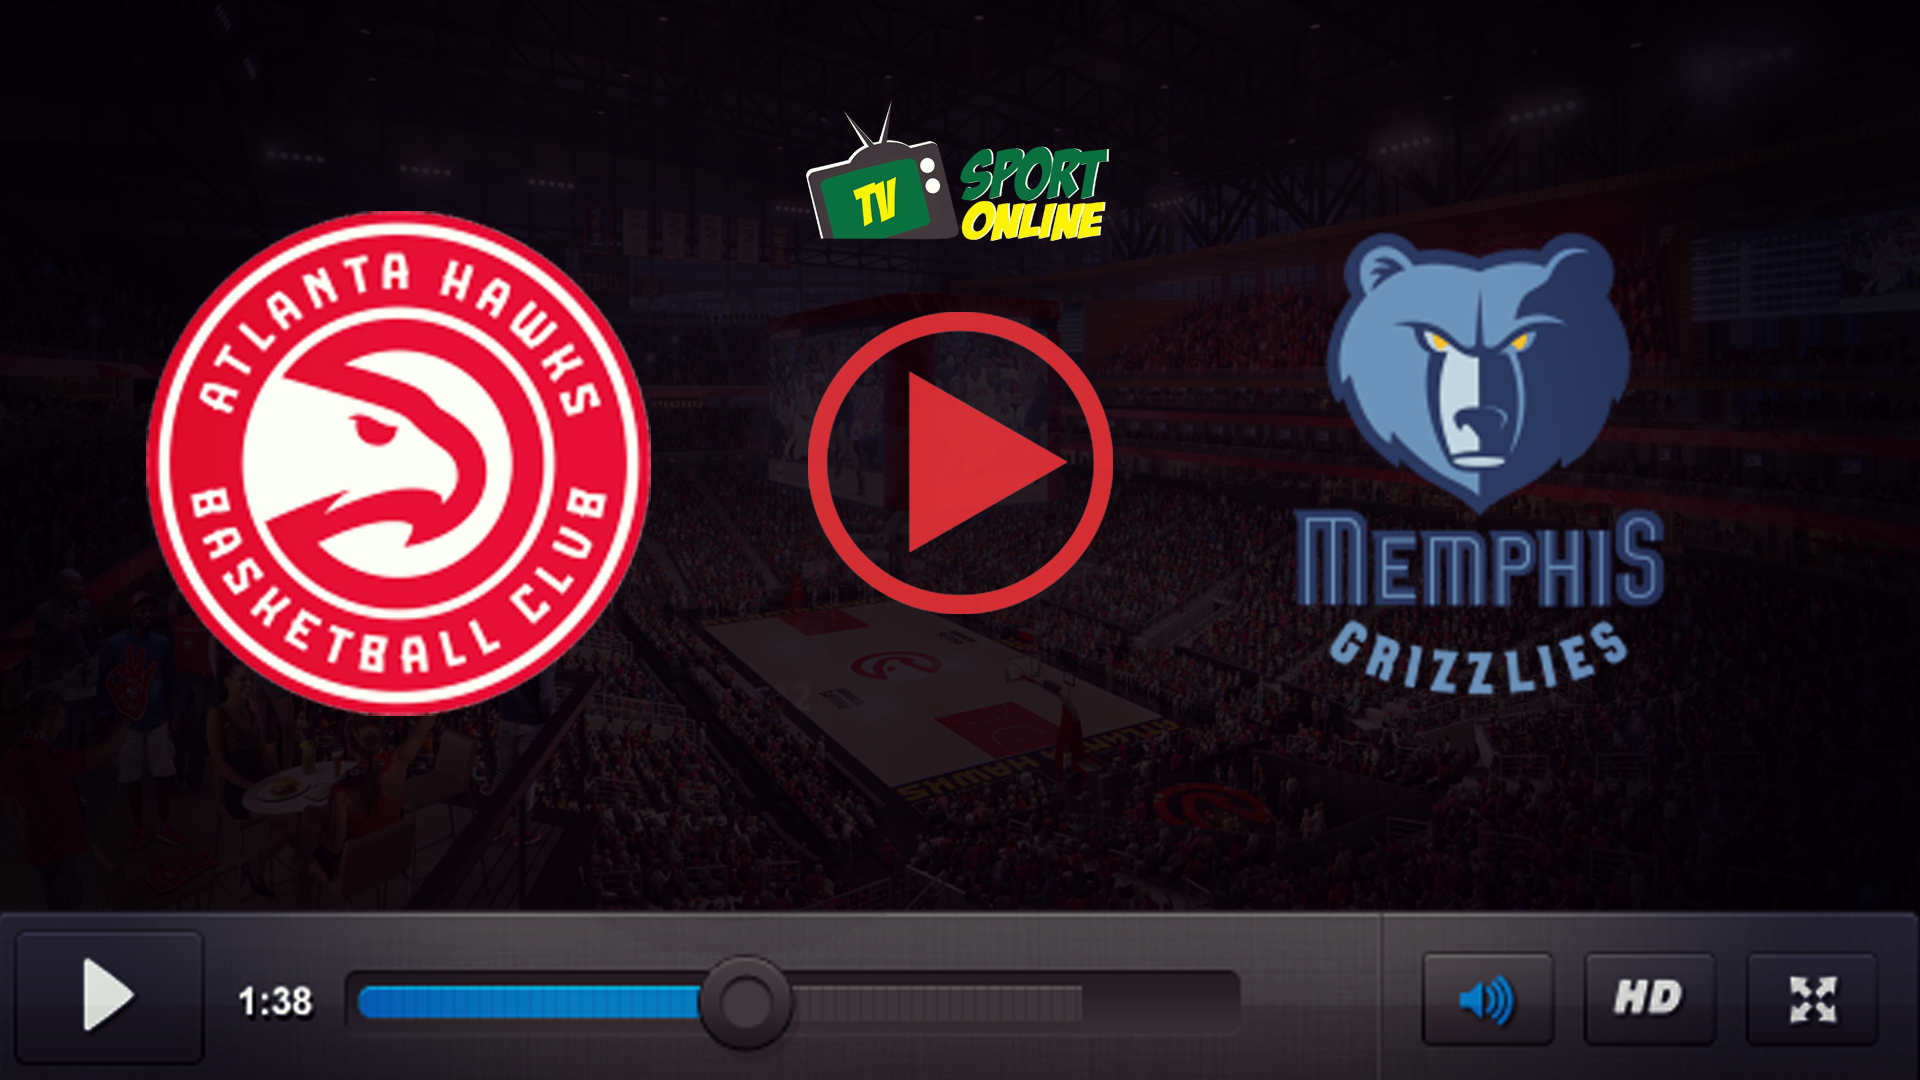 Watch Live Stream Atlanta Hawks – Memphis Grizzlies